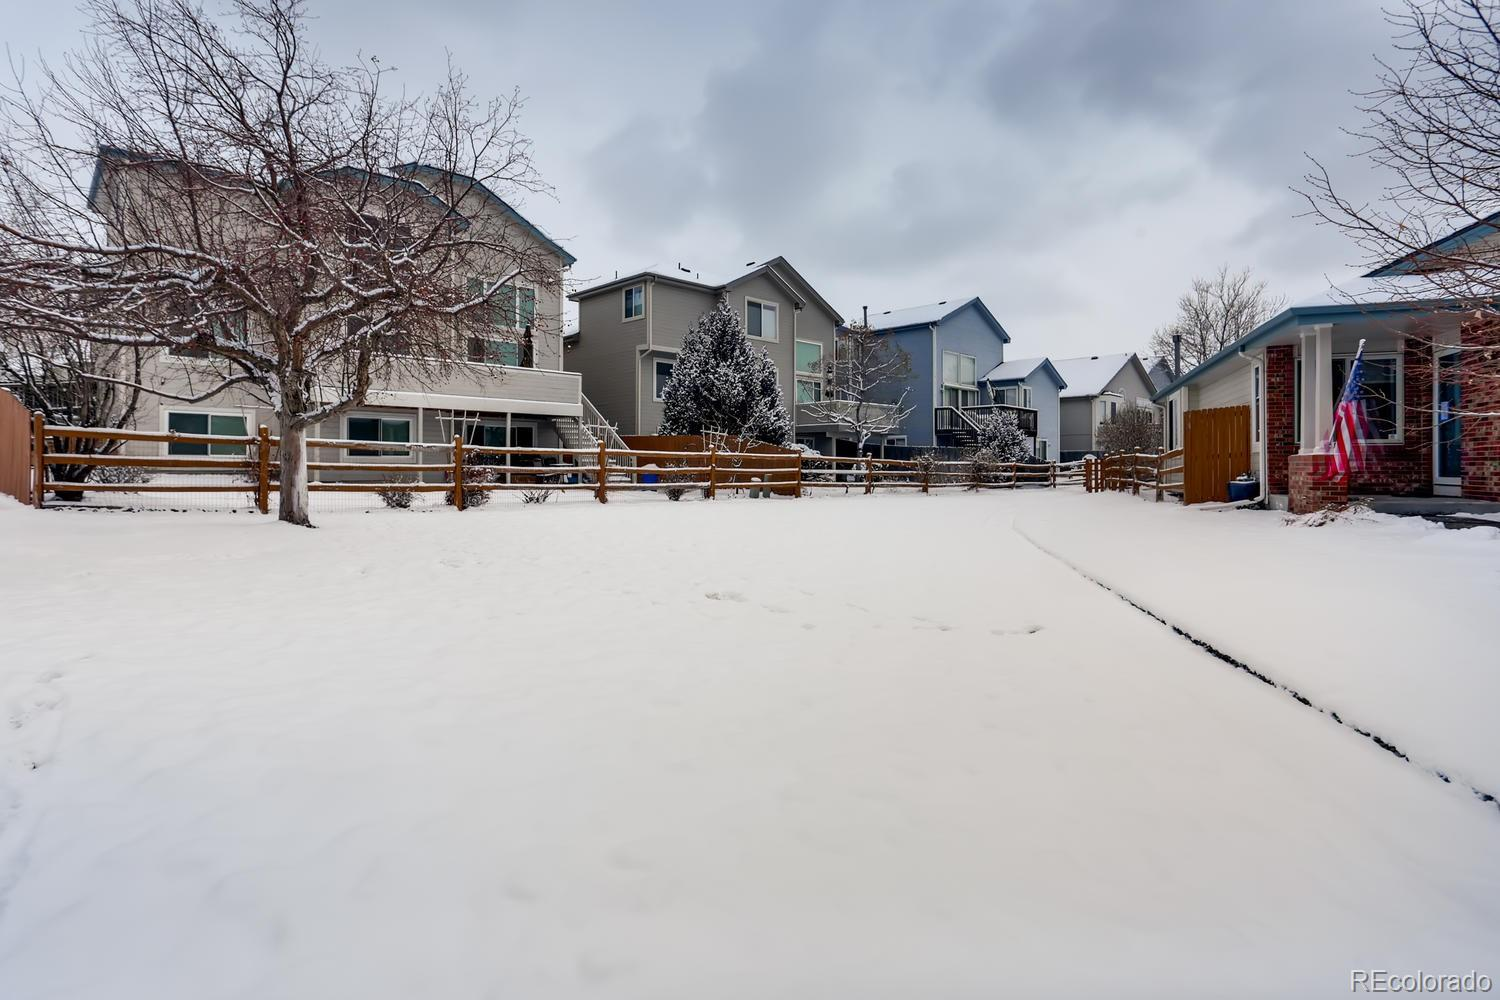 MLS# 3407296 - 32 - 4106 S Granby Circle, Aurora, CO 80014